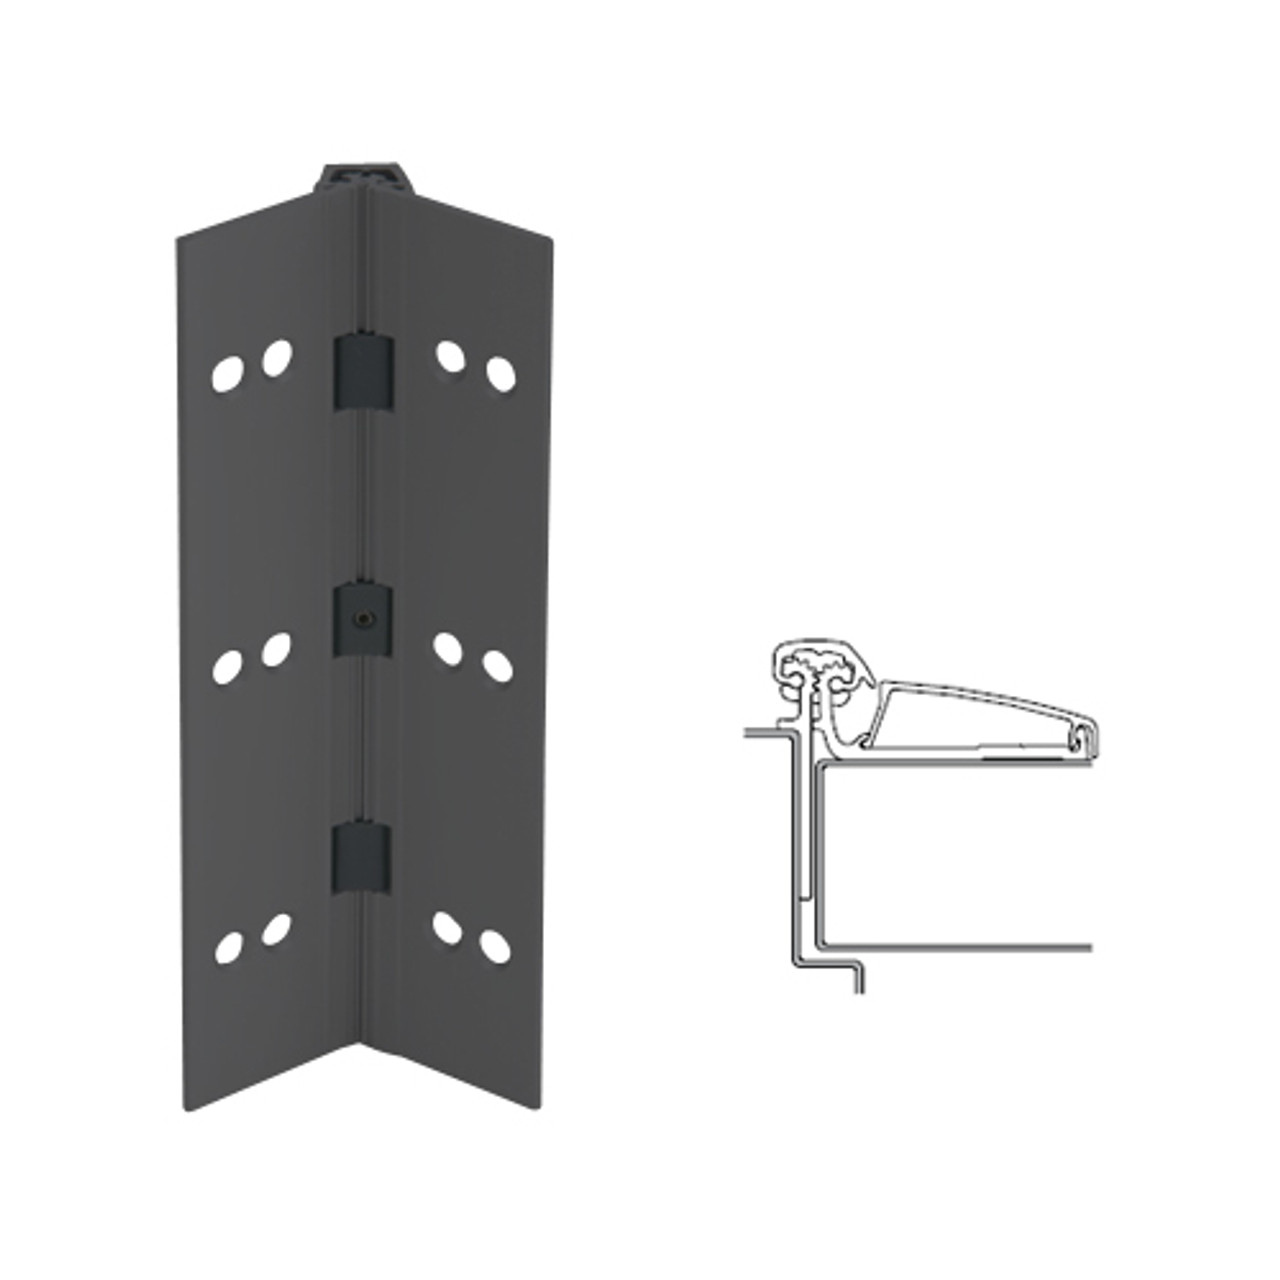 045XY-315AN-95-TEKWD IVES Adjustable Half Surface Continuous Geared Hinges with Wood Screws in Anodized Black